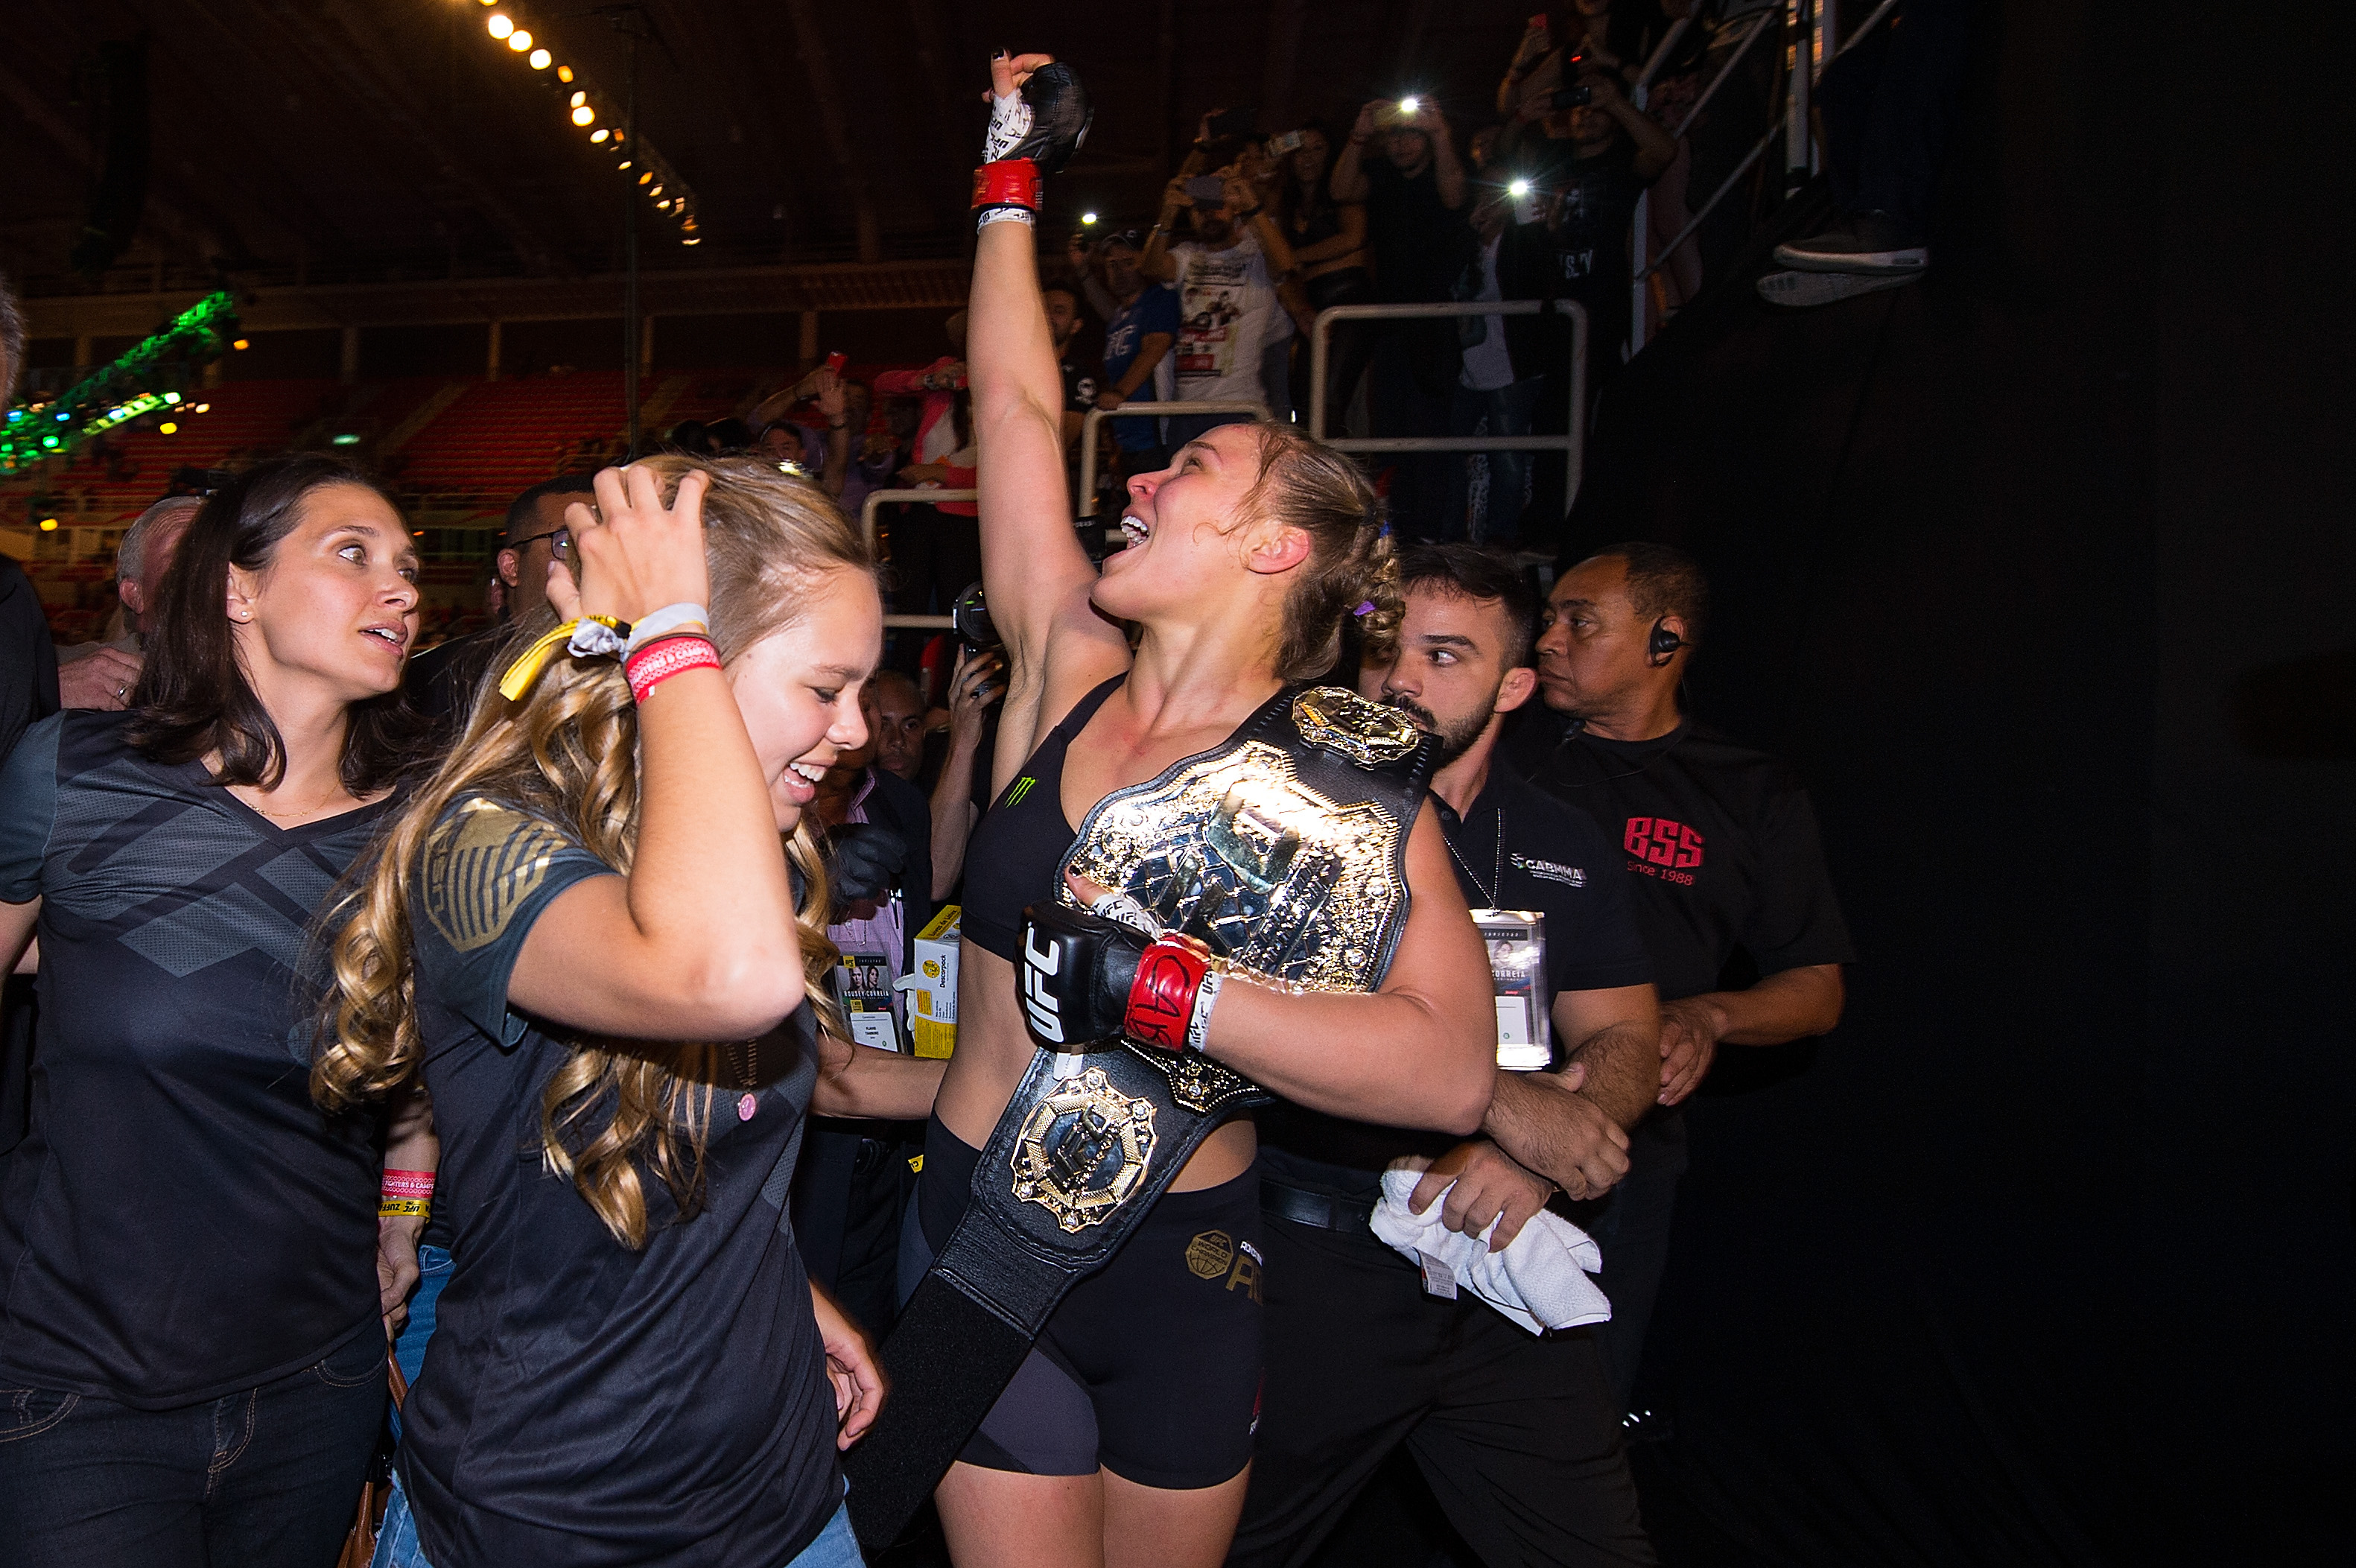 RIO DE JANEIRO, BRAZIL - AUGUST 01: UFC women's bantamweight champion Ronda Rousey celebrates with her family and fans backstage after defeating Bethe Correira of Brazil by KO during the UFC 190 event inside HSBC Arena on August 1, 2015 in Rio de Janeiro, Brazil. (Photo by Jeff Bottari/Zuffa LLC)